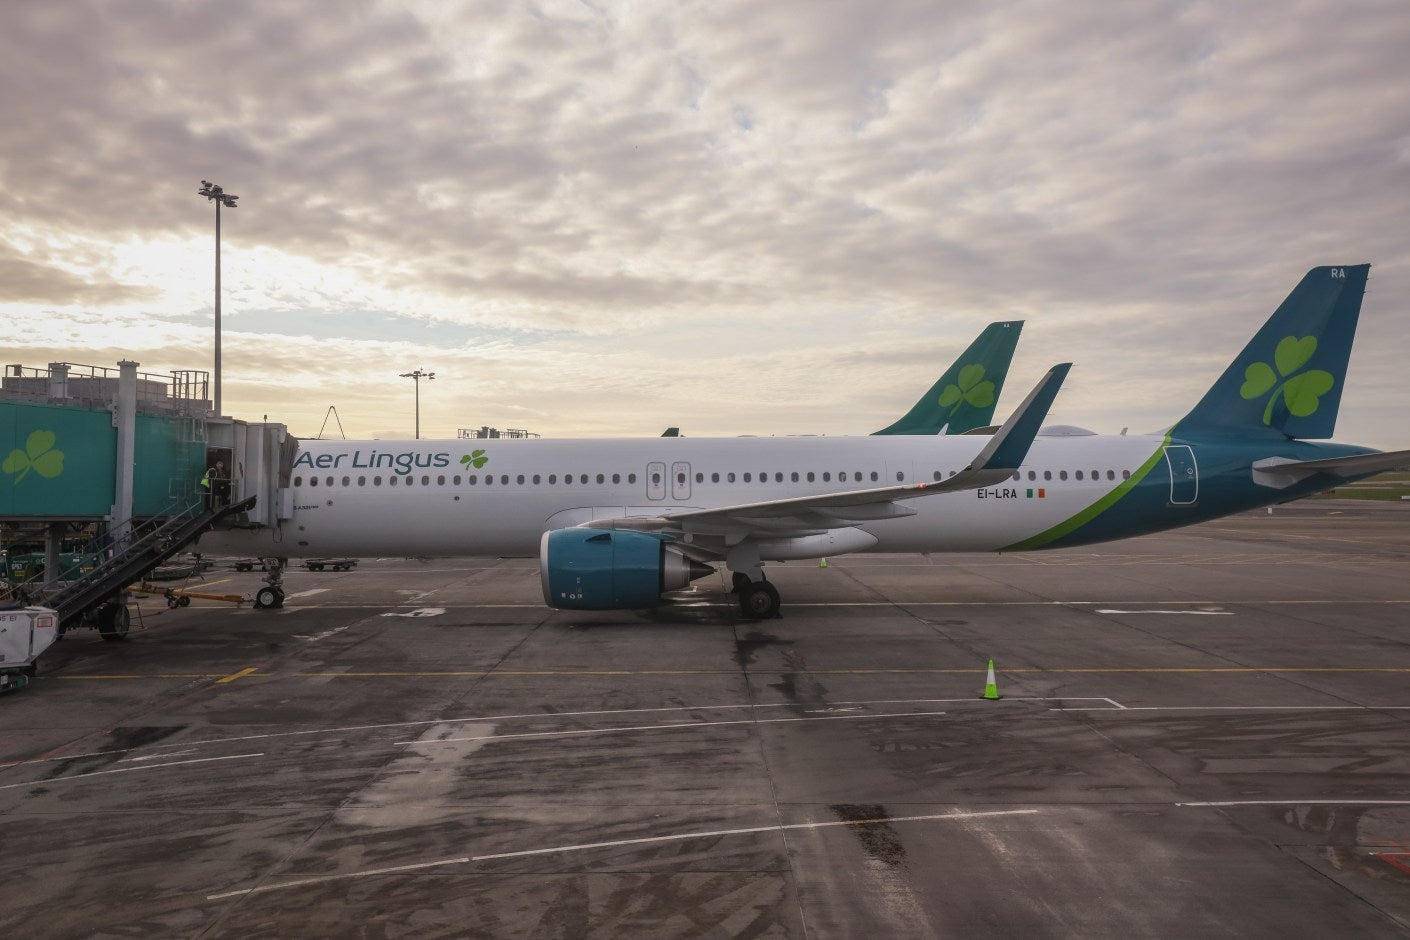 How to book Aer Lingus award tickets with Avios - The Points Guy UK